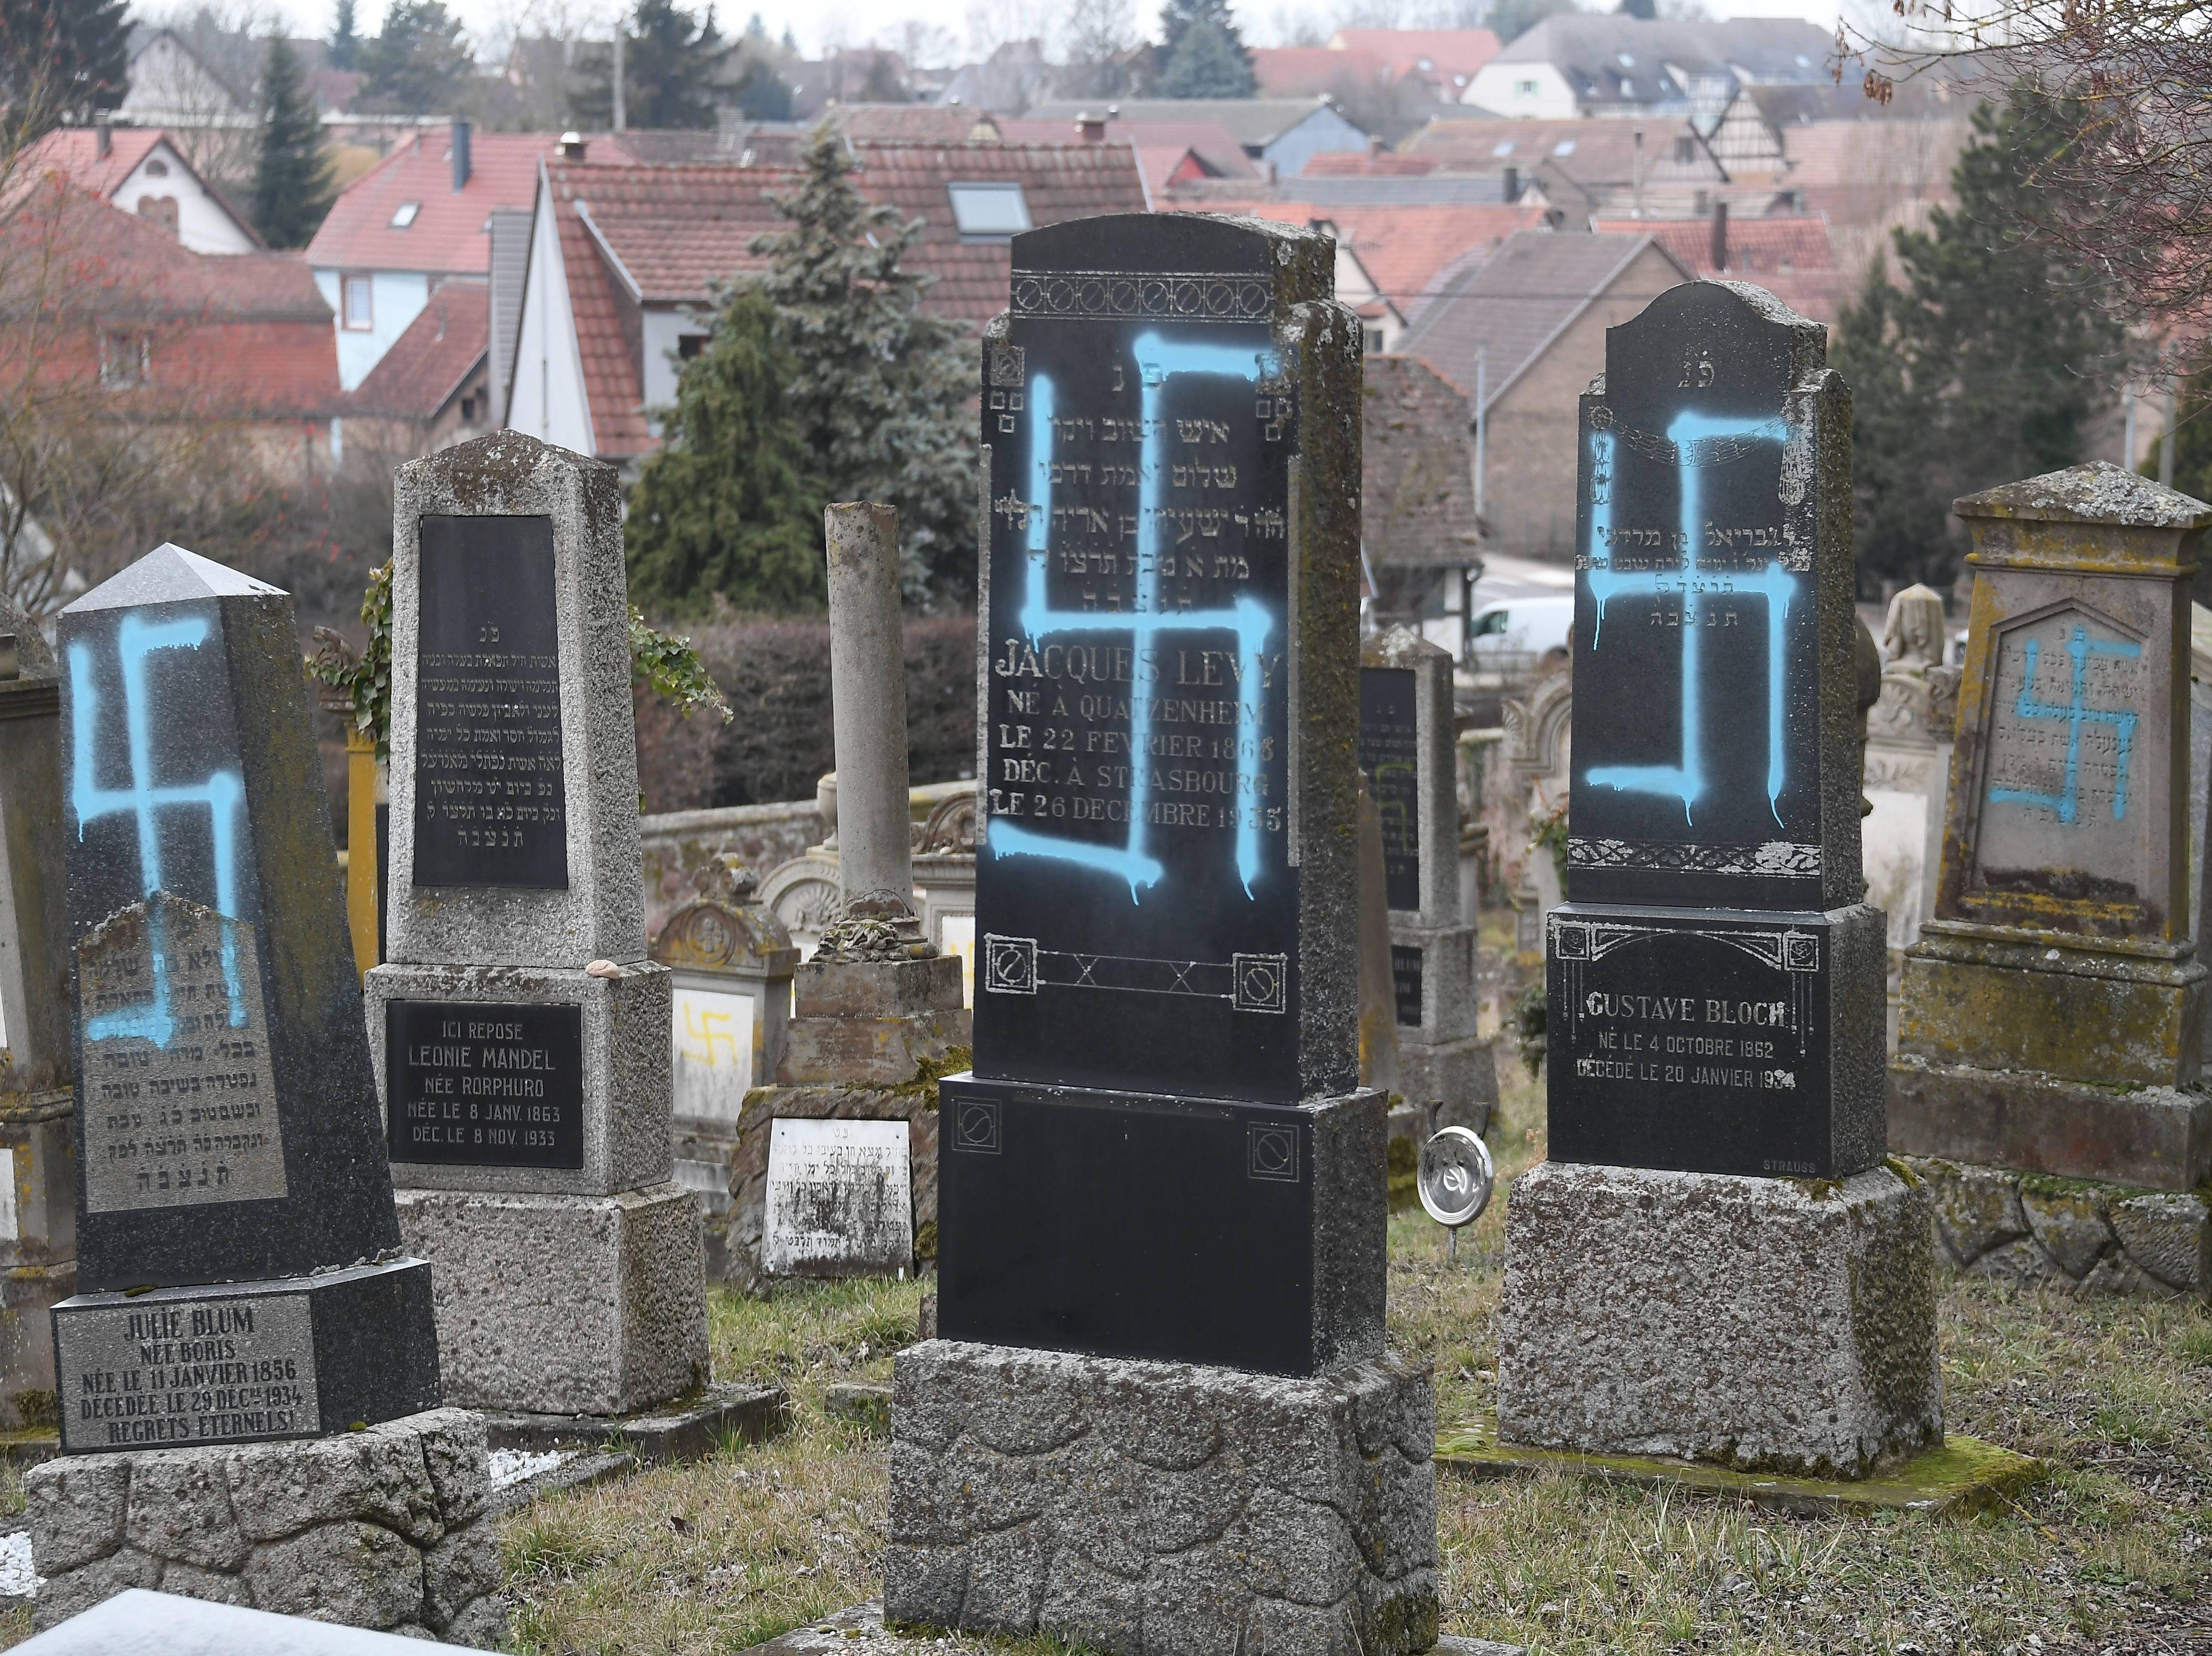 A picture taken on February 19, 2019 in Quatzenheim shows svastikas painted on graves at a Jewish cemetery, on the day of a nationwide marches against a rise in anti-Semitic attacks. - Around 80 graves have been vandalised. The damage was discovered on Tuesday morning at a cemetery in the village of Quatzenheim, close to the border with Germany in the Alsace region, a statement from the regional security office said.